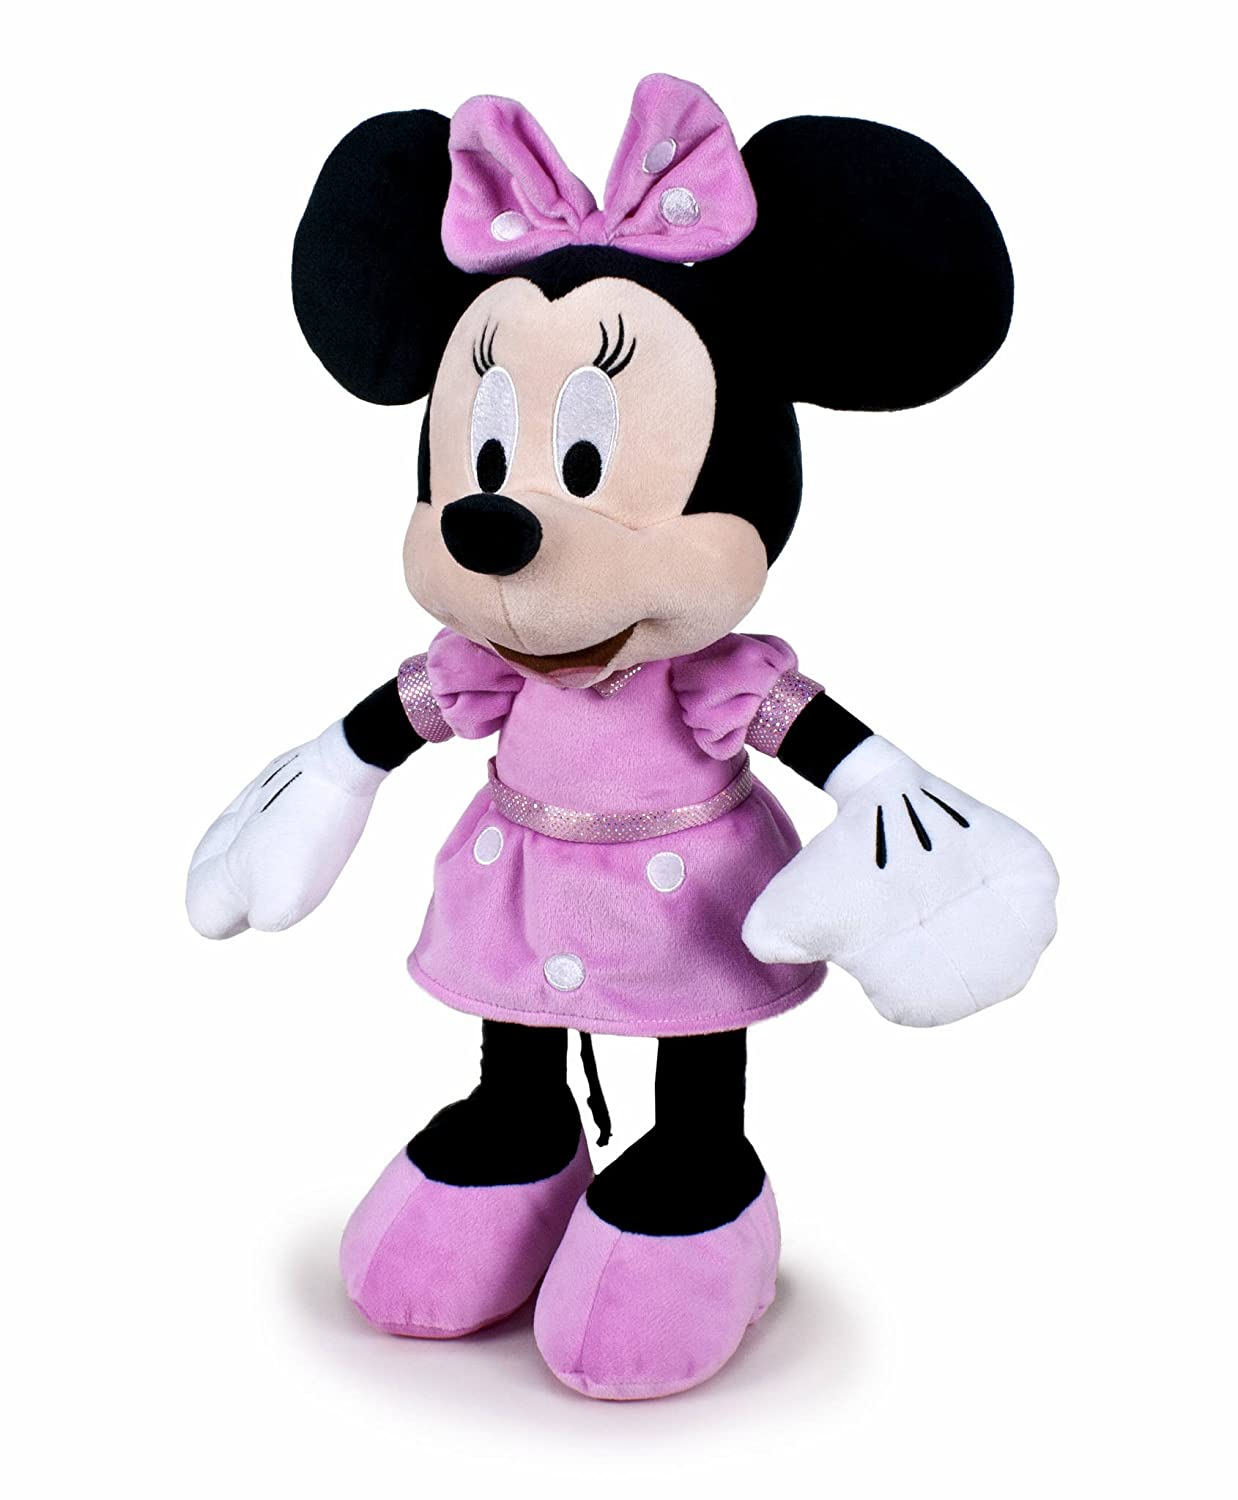 Quirón Mickey Mouse - Minnie Club House 43Cm (Famosa) 700004808: Amazon.es: Juguetes y juegos